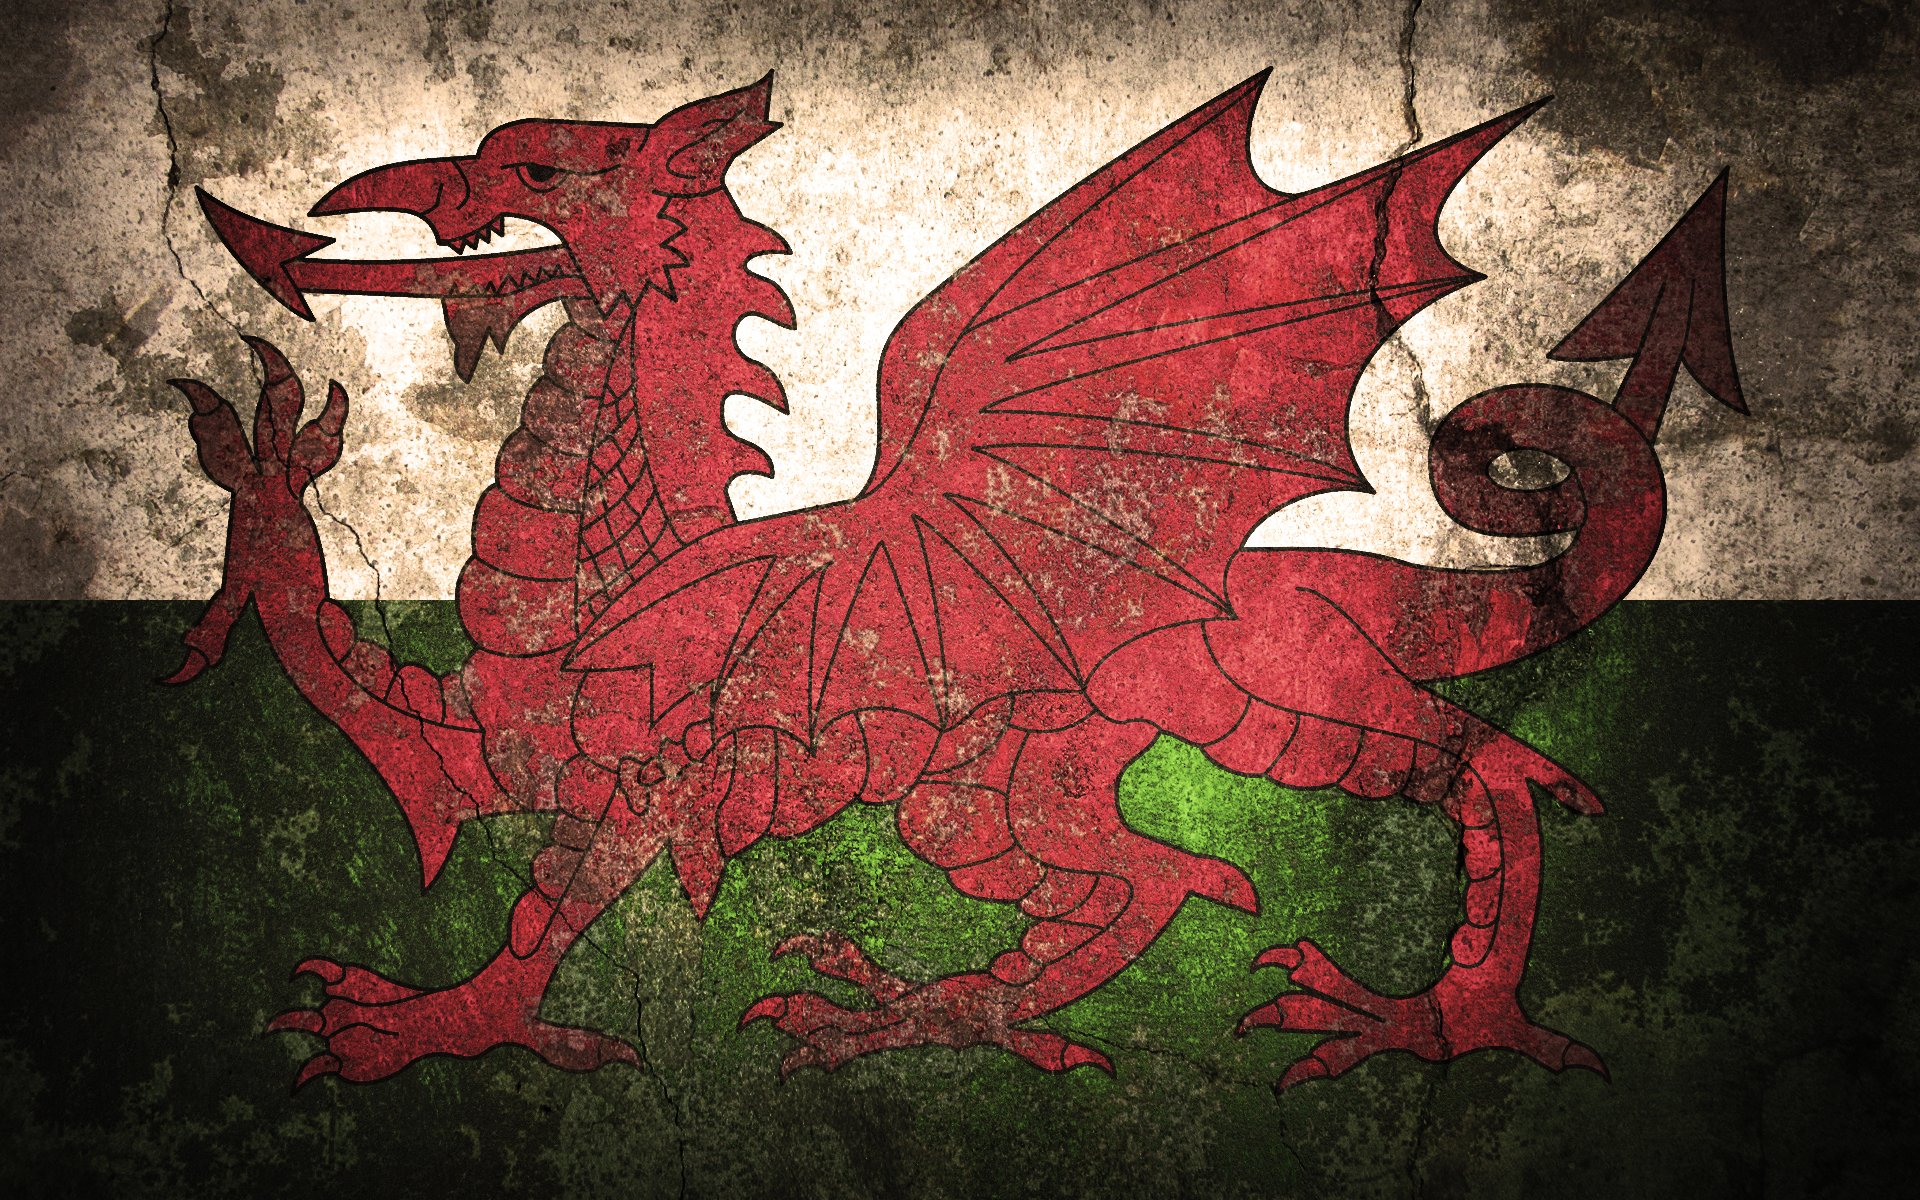 welsh flag just made this so ill HD Wallpaper   General 897079 1920x1200